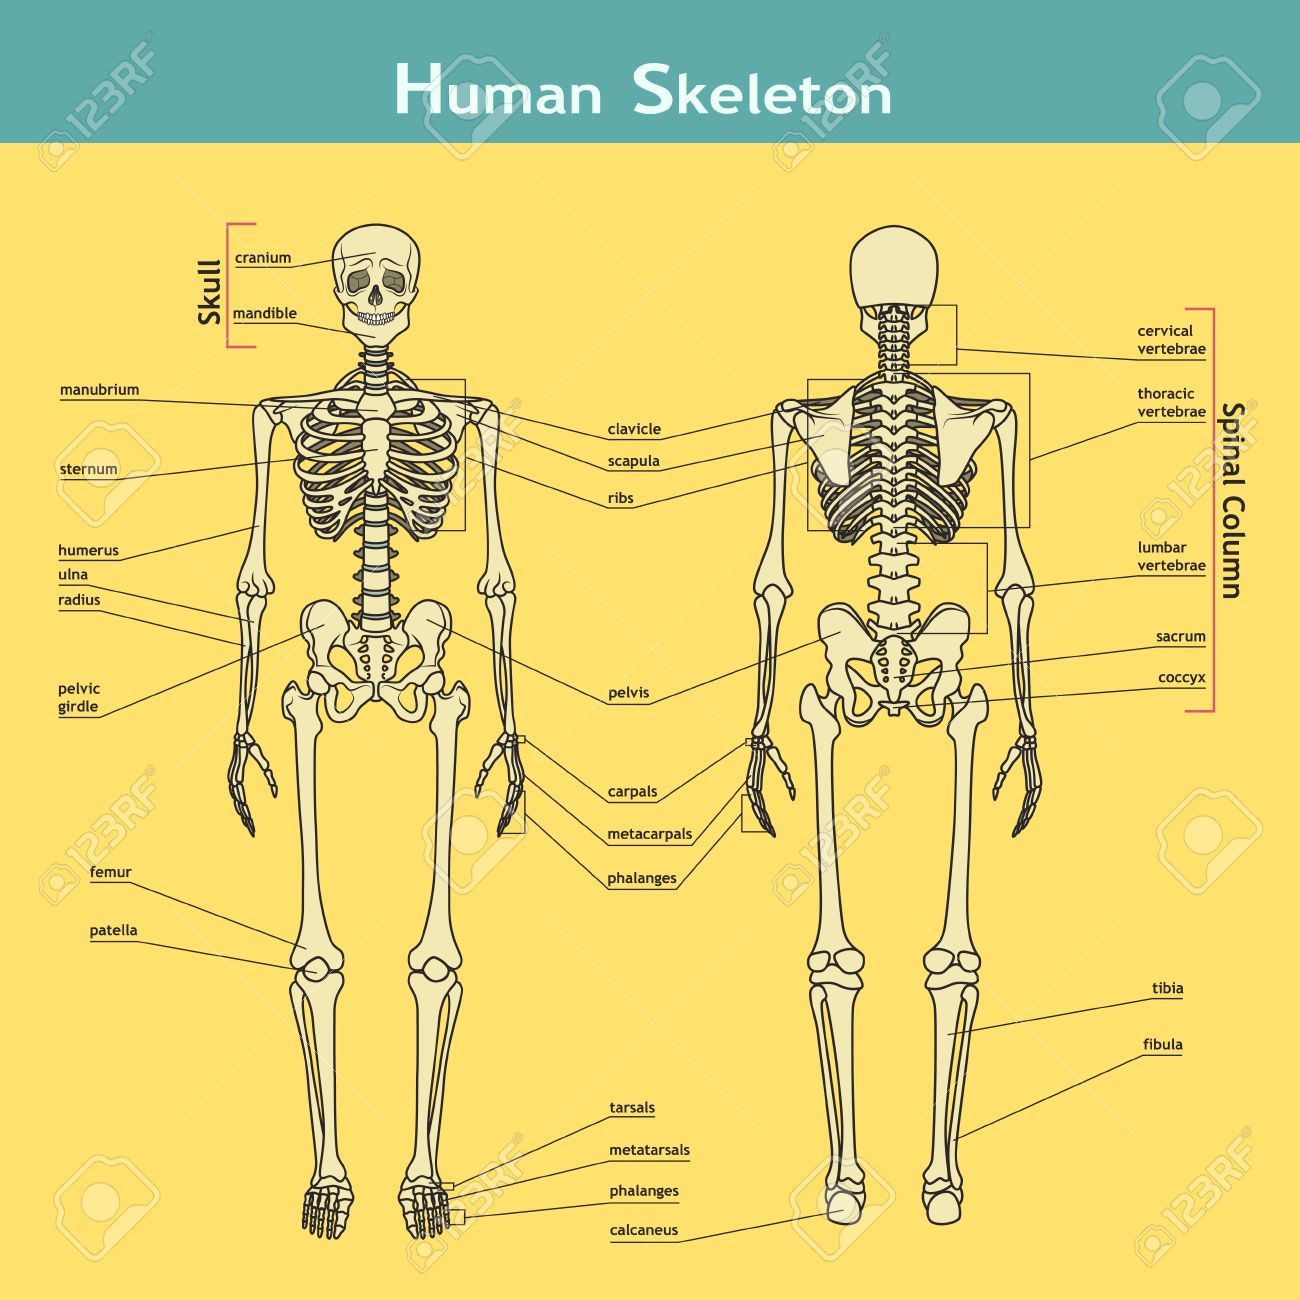 Vector illustration of human skeleton. Didactic board of anatomy of human bony system. Illustration of skeletal system with labels. A diagram of the main parts of the skeletal system. - 52159814